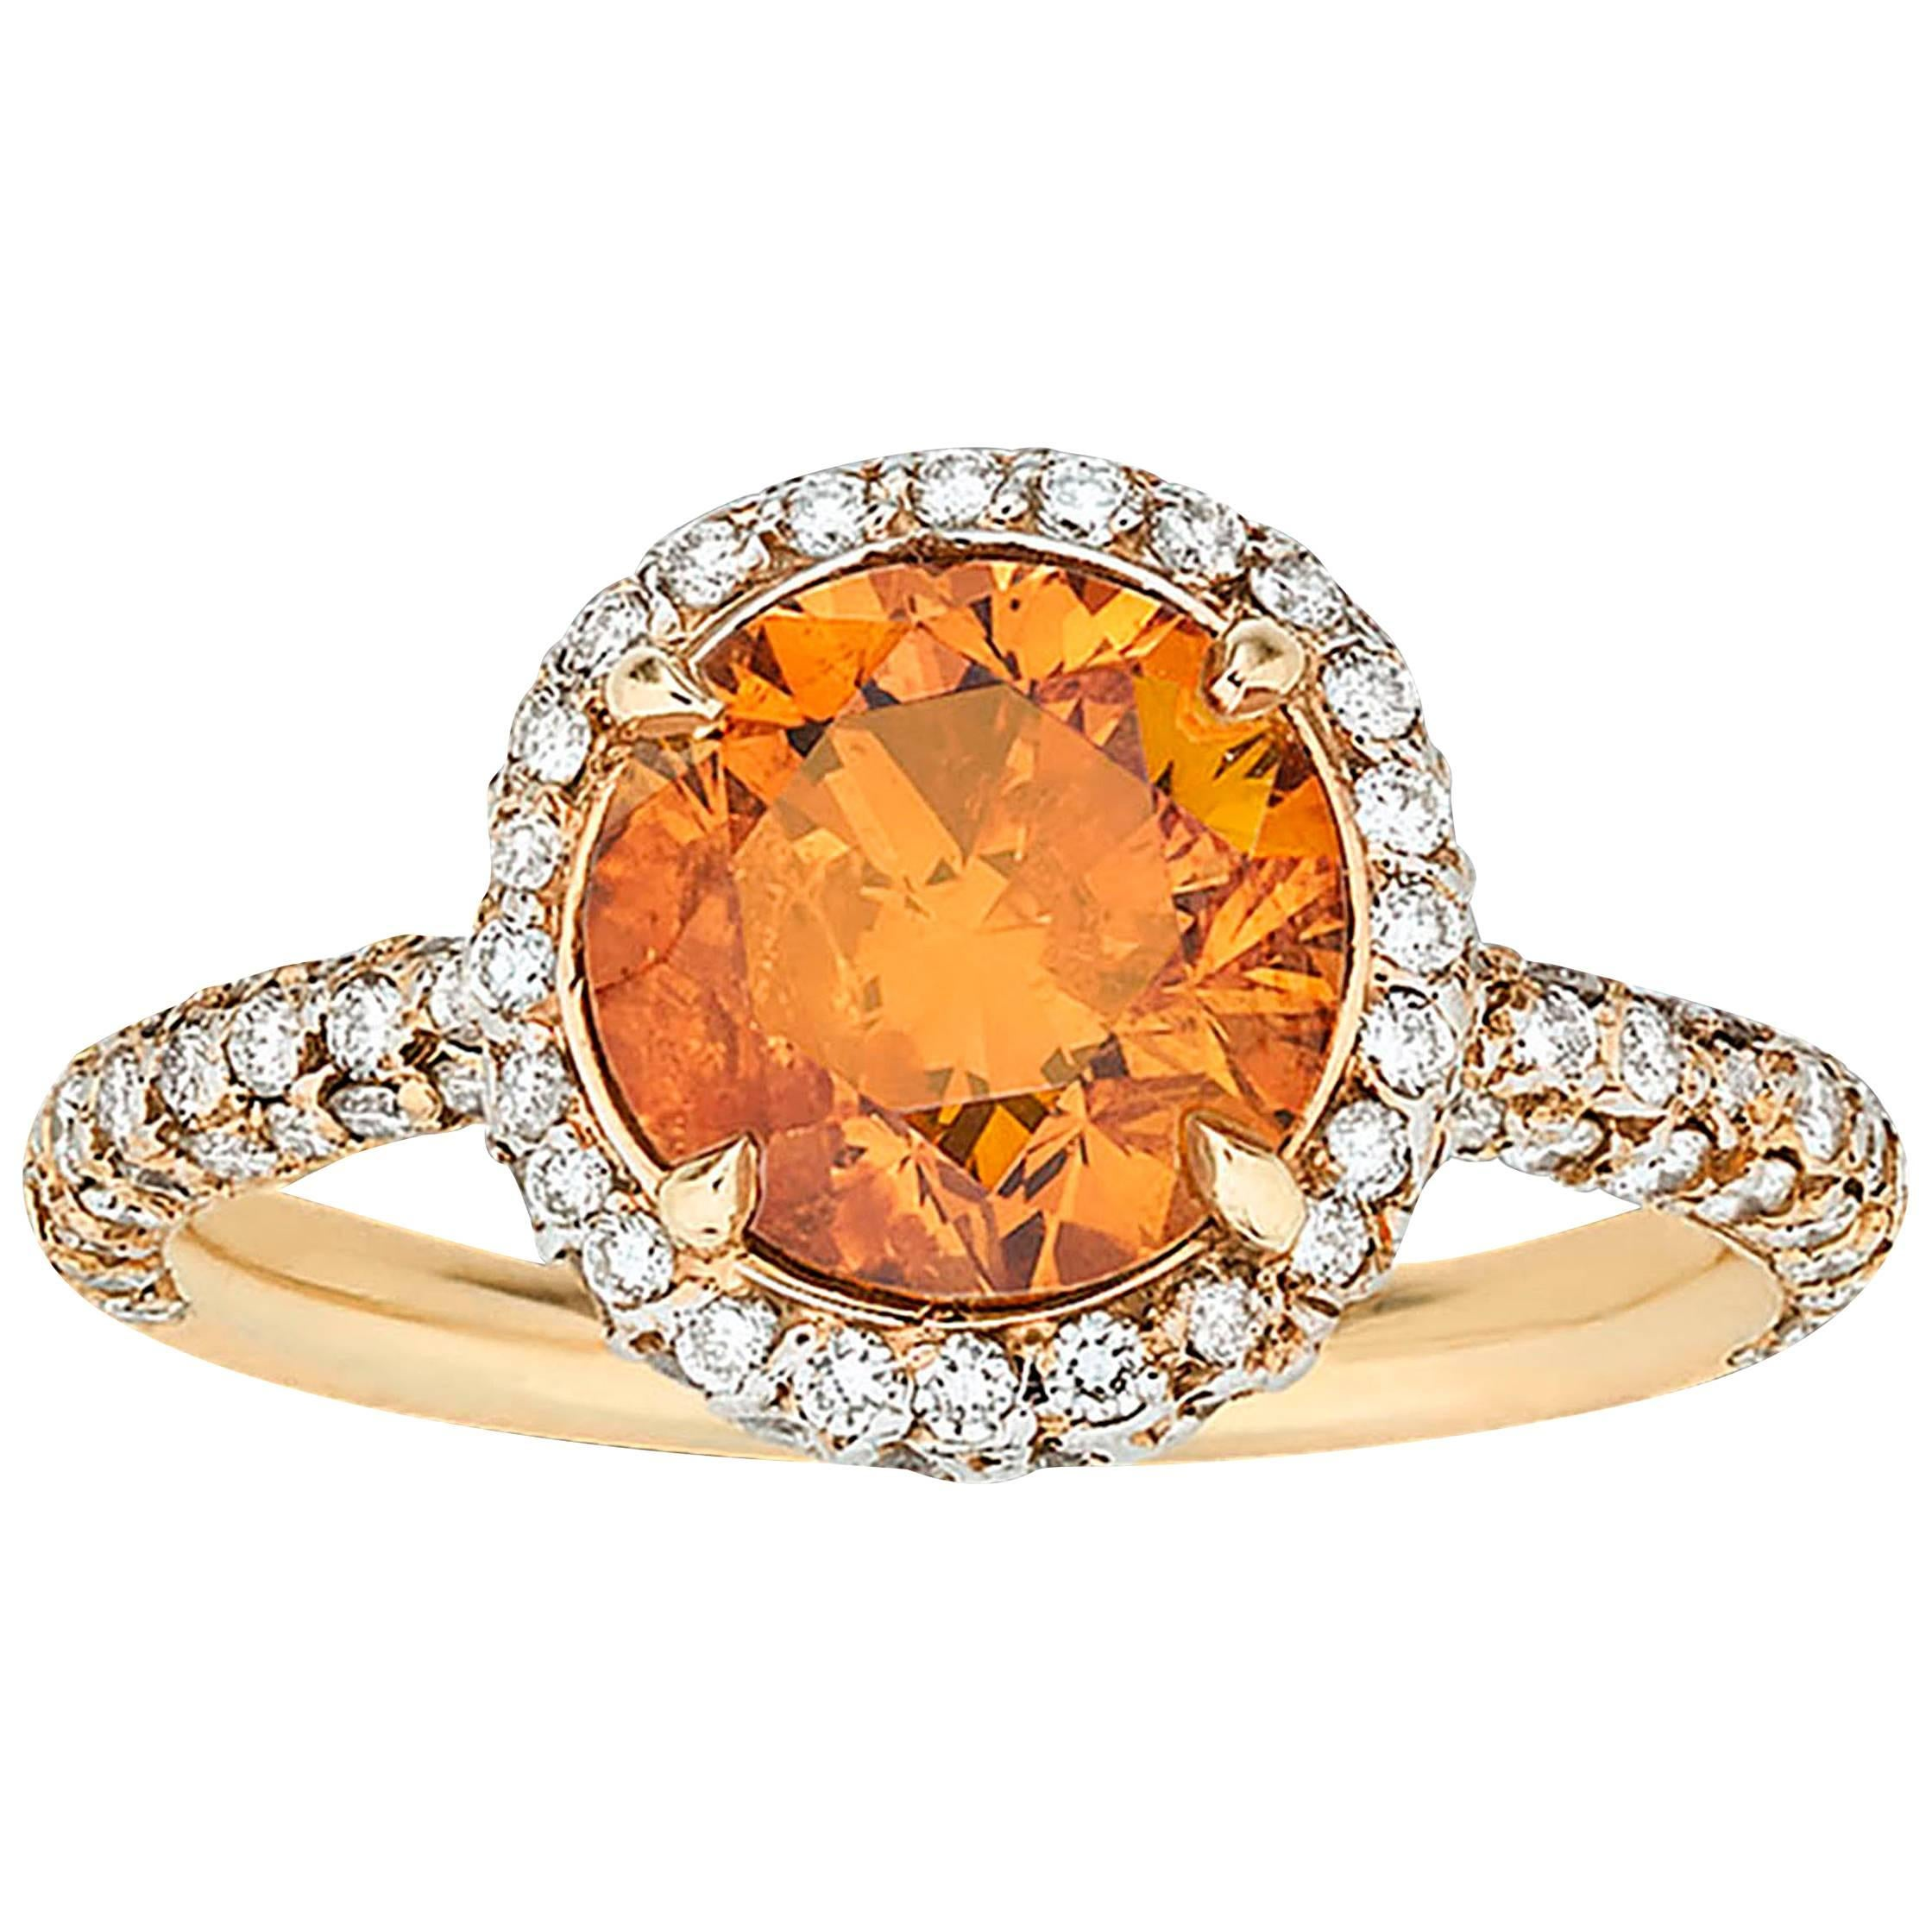 results press rings engagement jewellery en us dorotheum selected auction about orange